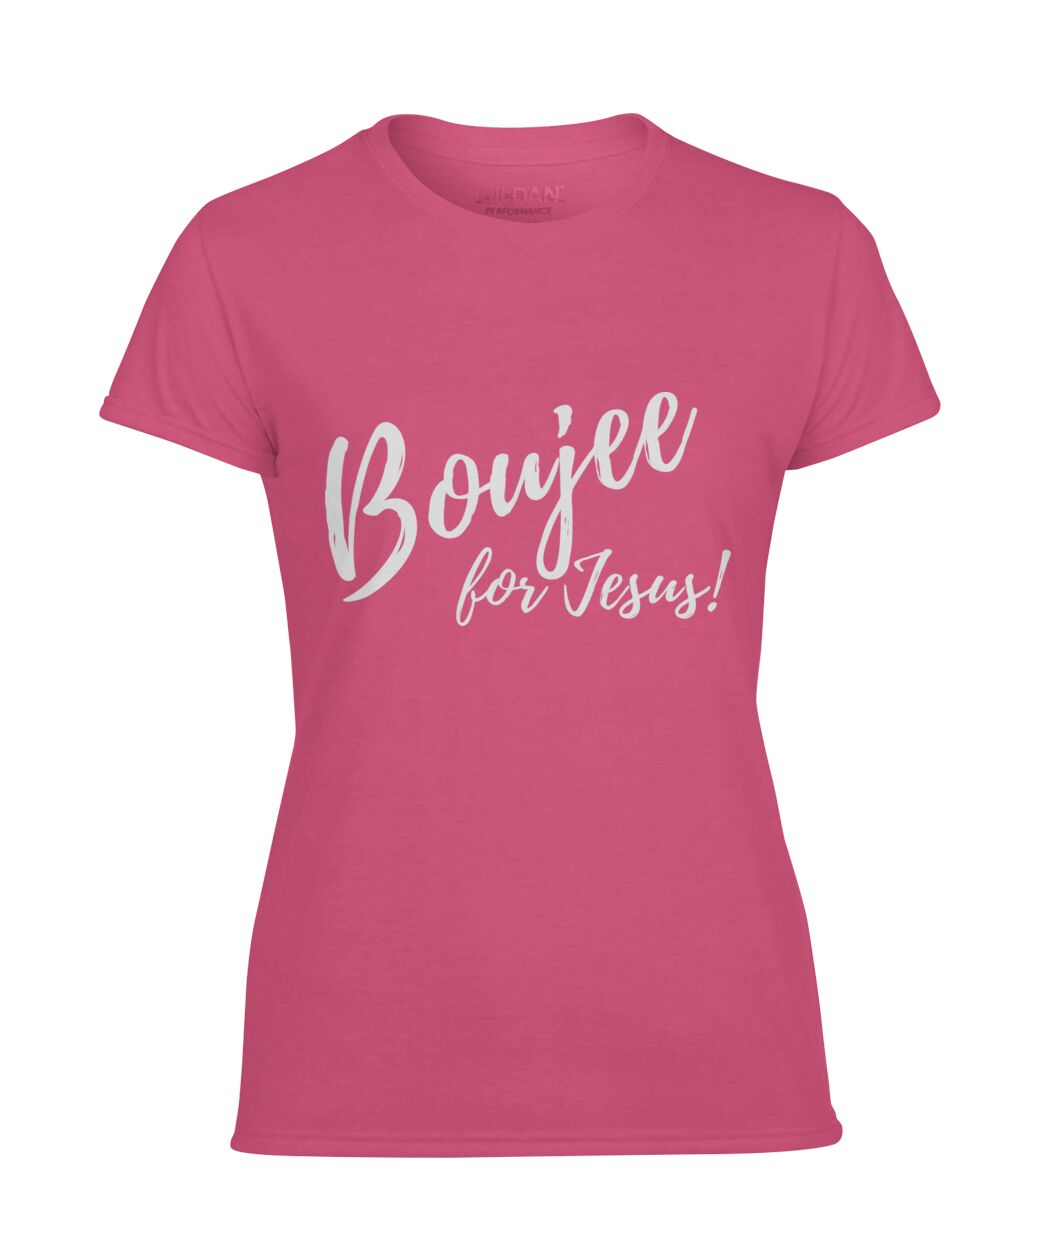 Boujee for Jesus - Women's Performance Tee